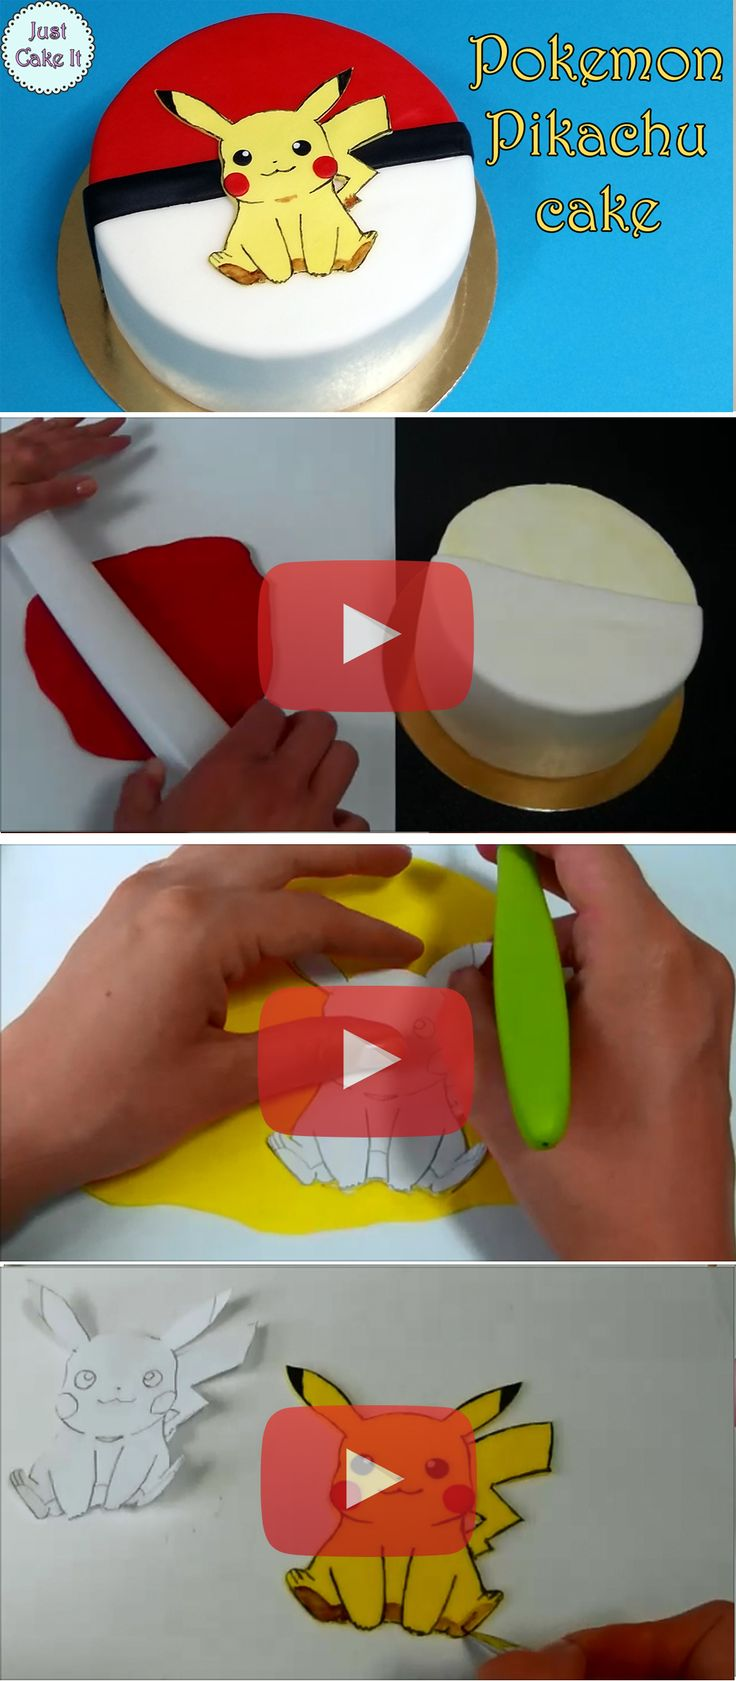 Pokemon pikachu cake tutorial, step by step how to make it from fondant. Watch it here https://www.youtube.com/watch?v=39yh05ZGMy8